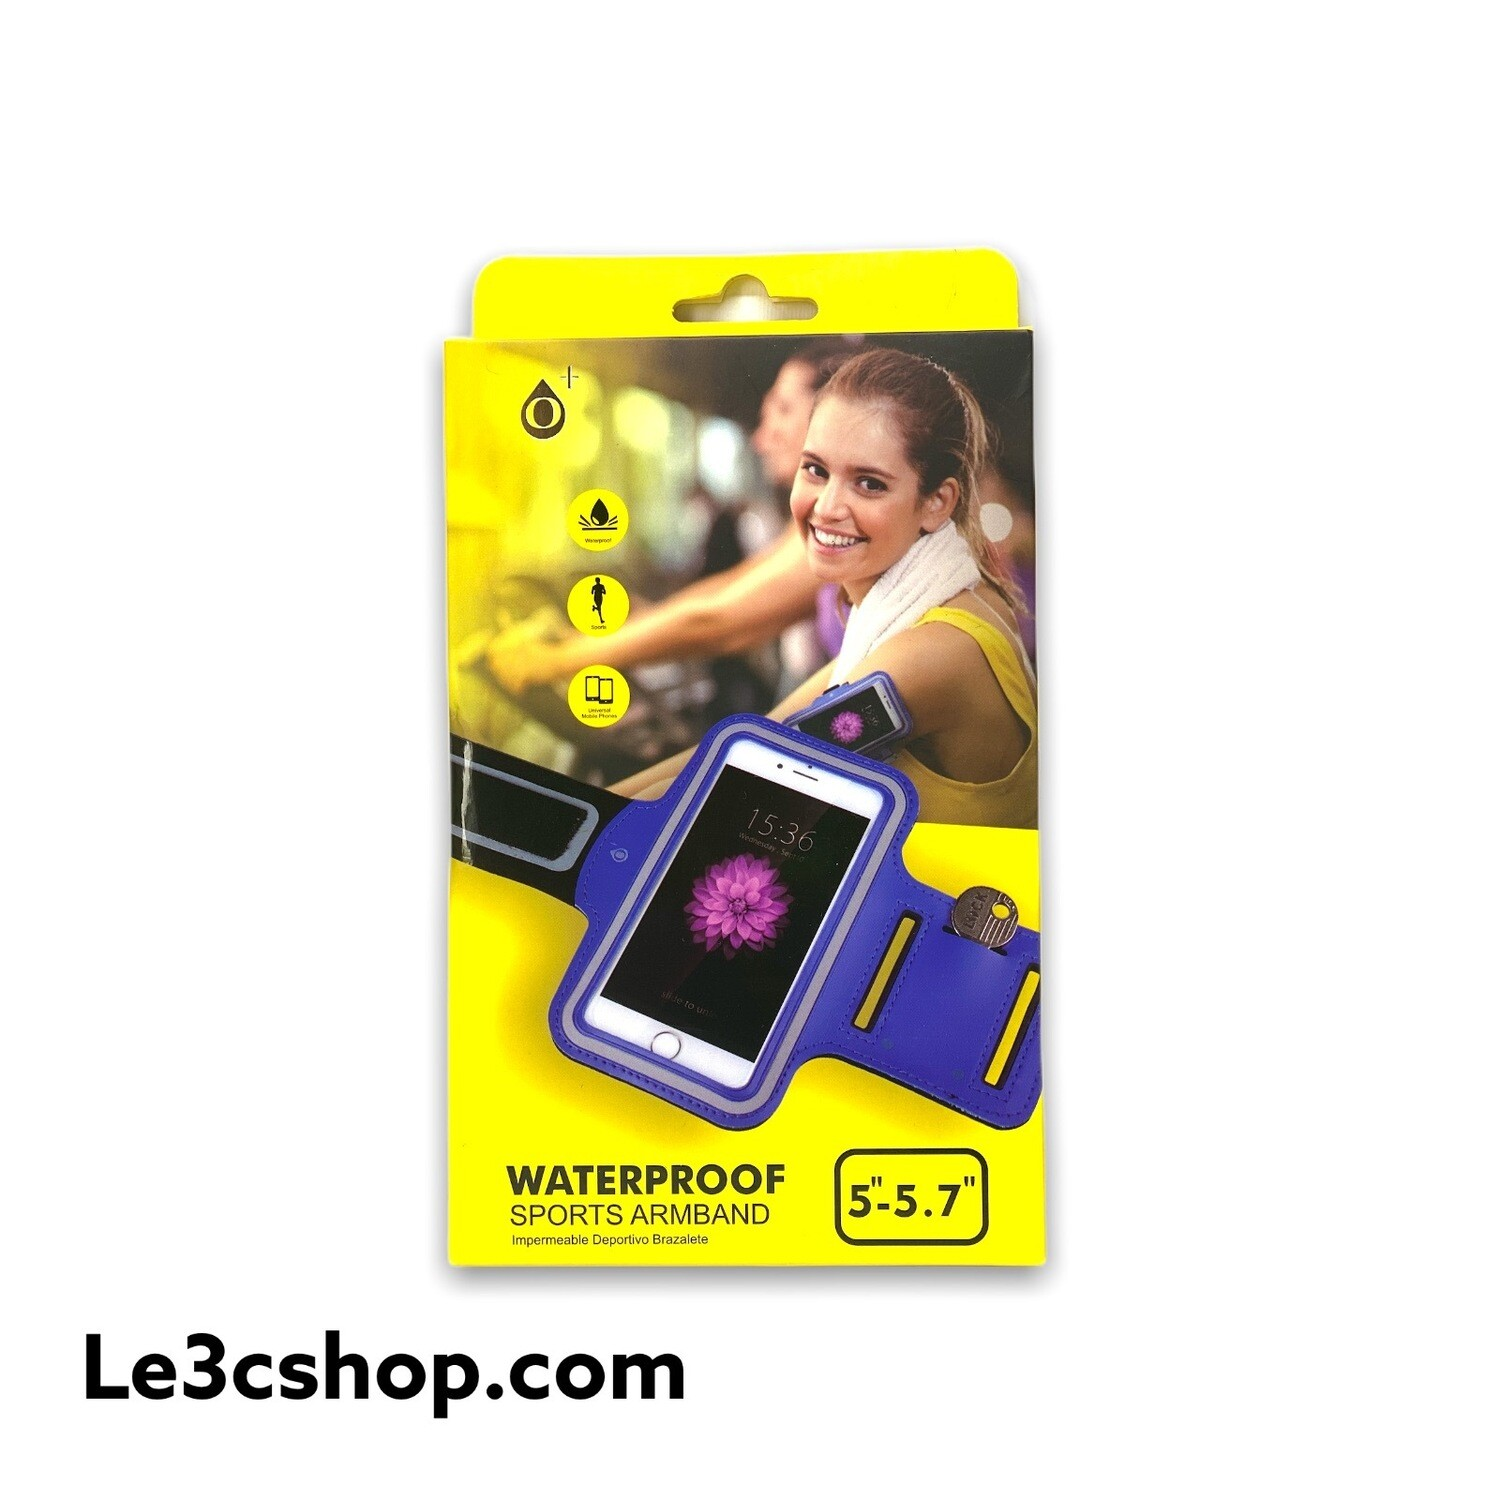 Waterproof Sports Armband Unico